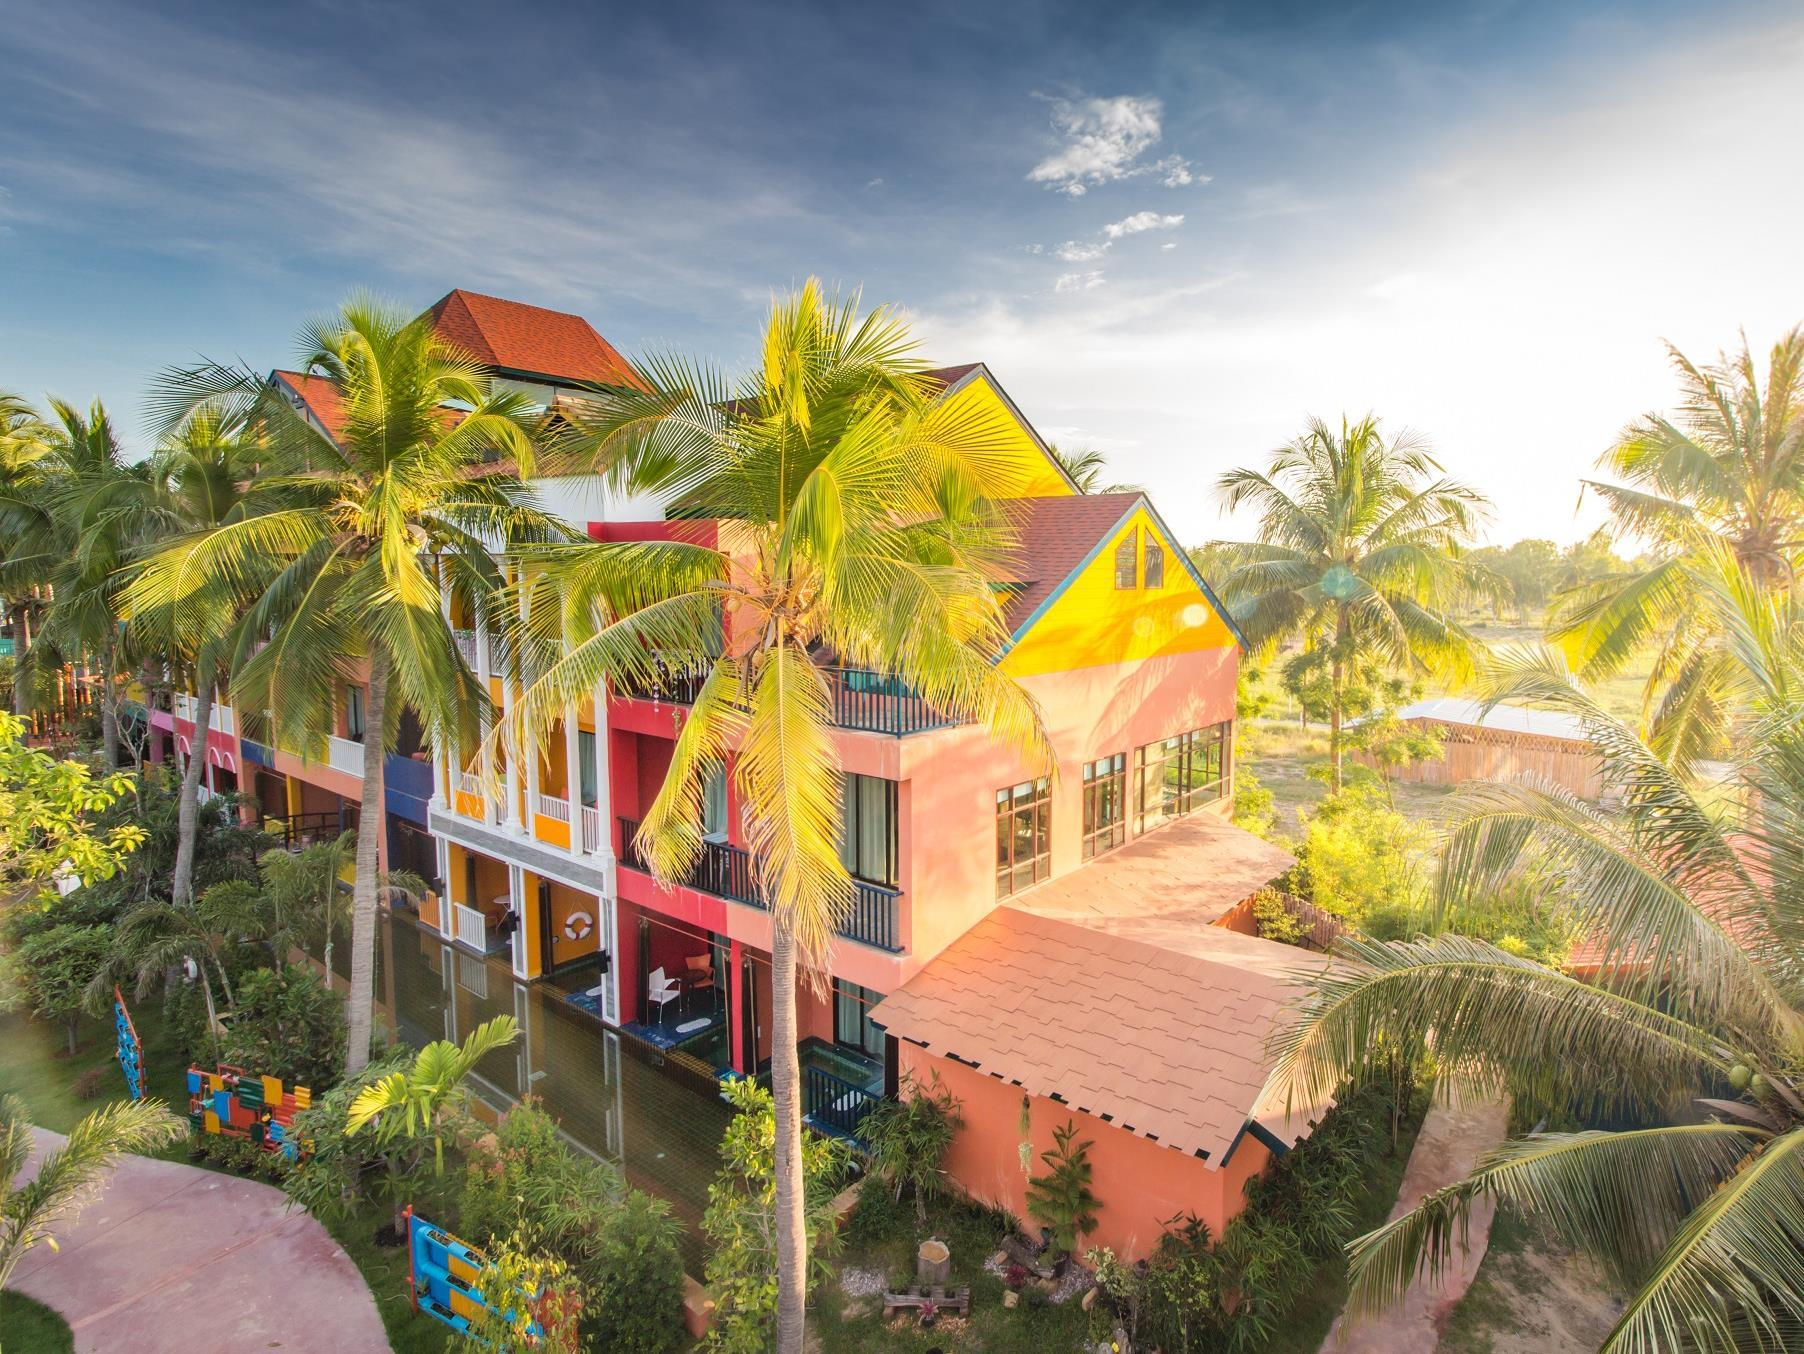 Vartika Adventure Retreatic Resort - Hotell och Boende i Thailand i Asien